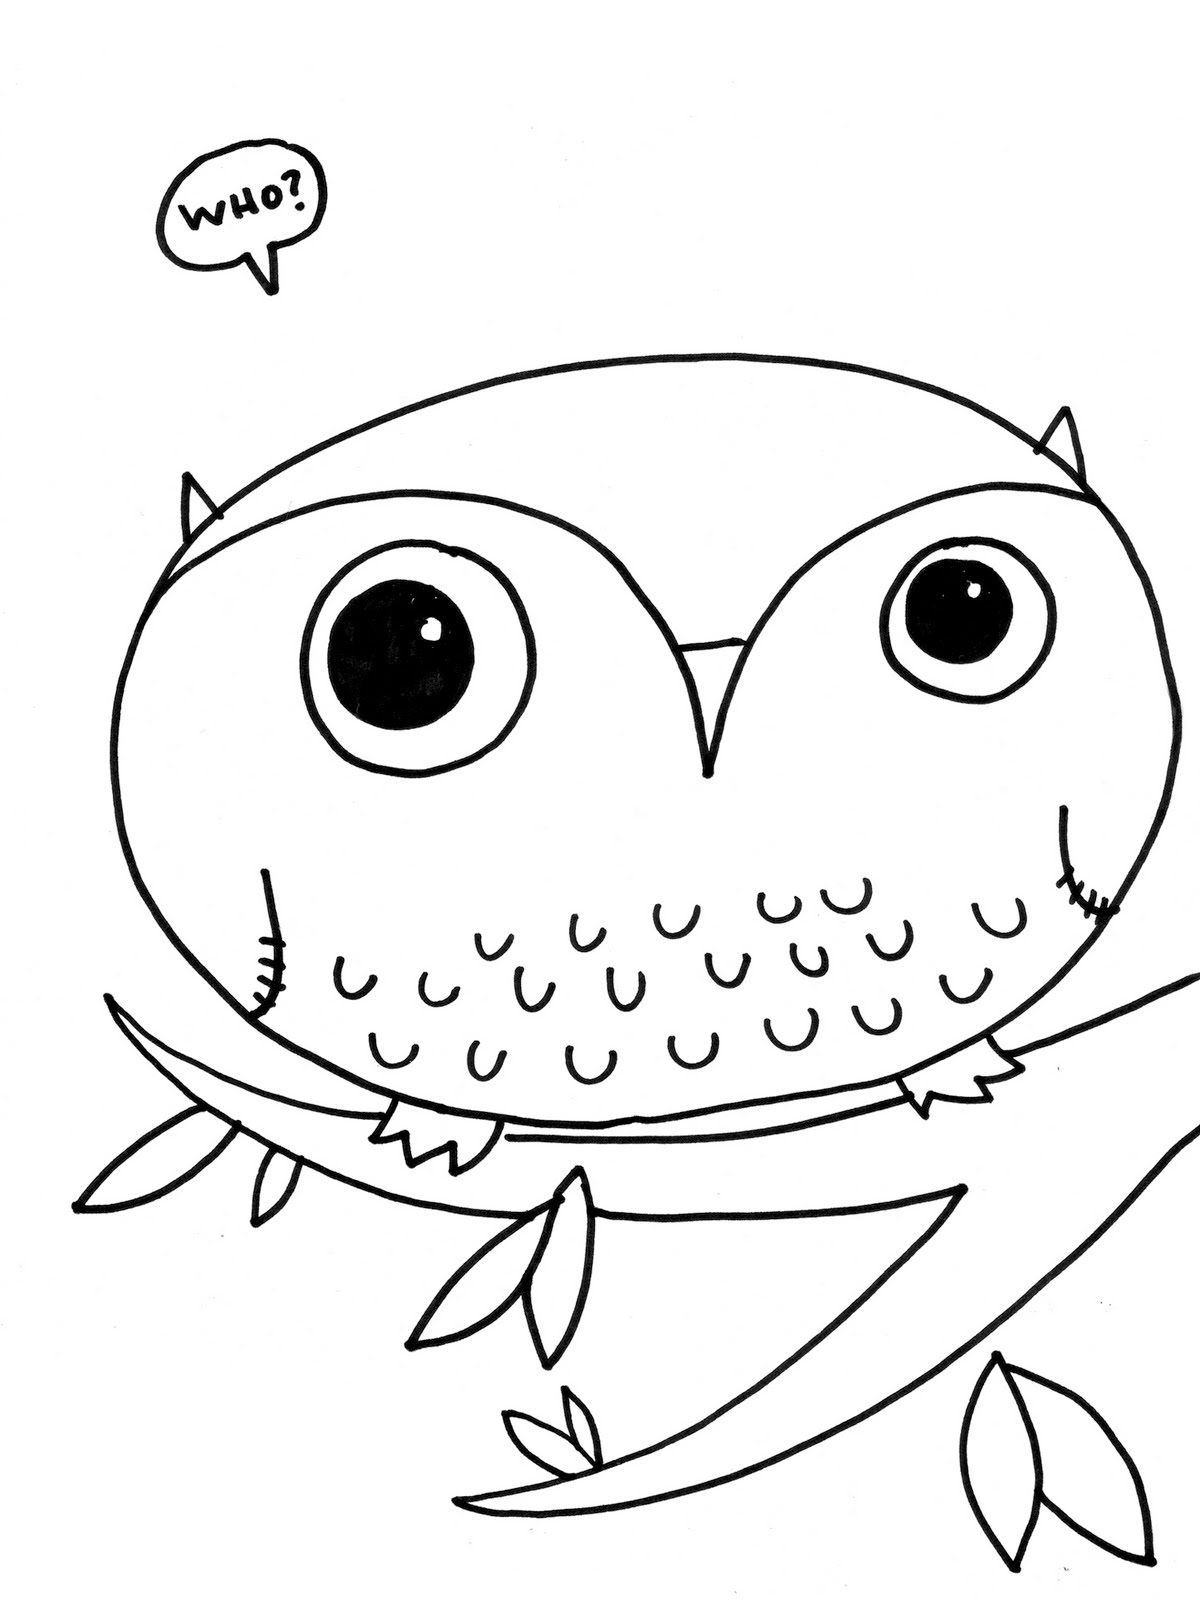 Free Printable Owl Coloring Pages For Kids Free Coloring Sheets For Toddlers